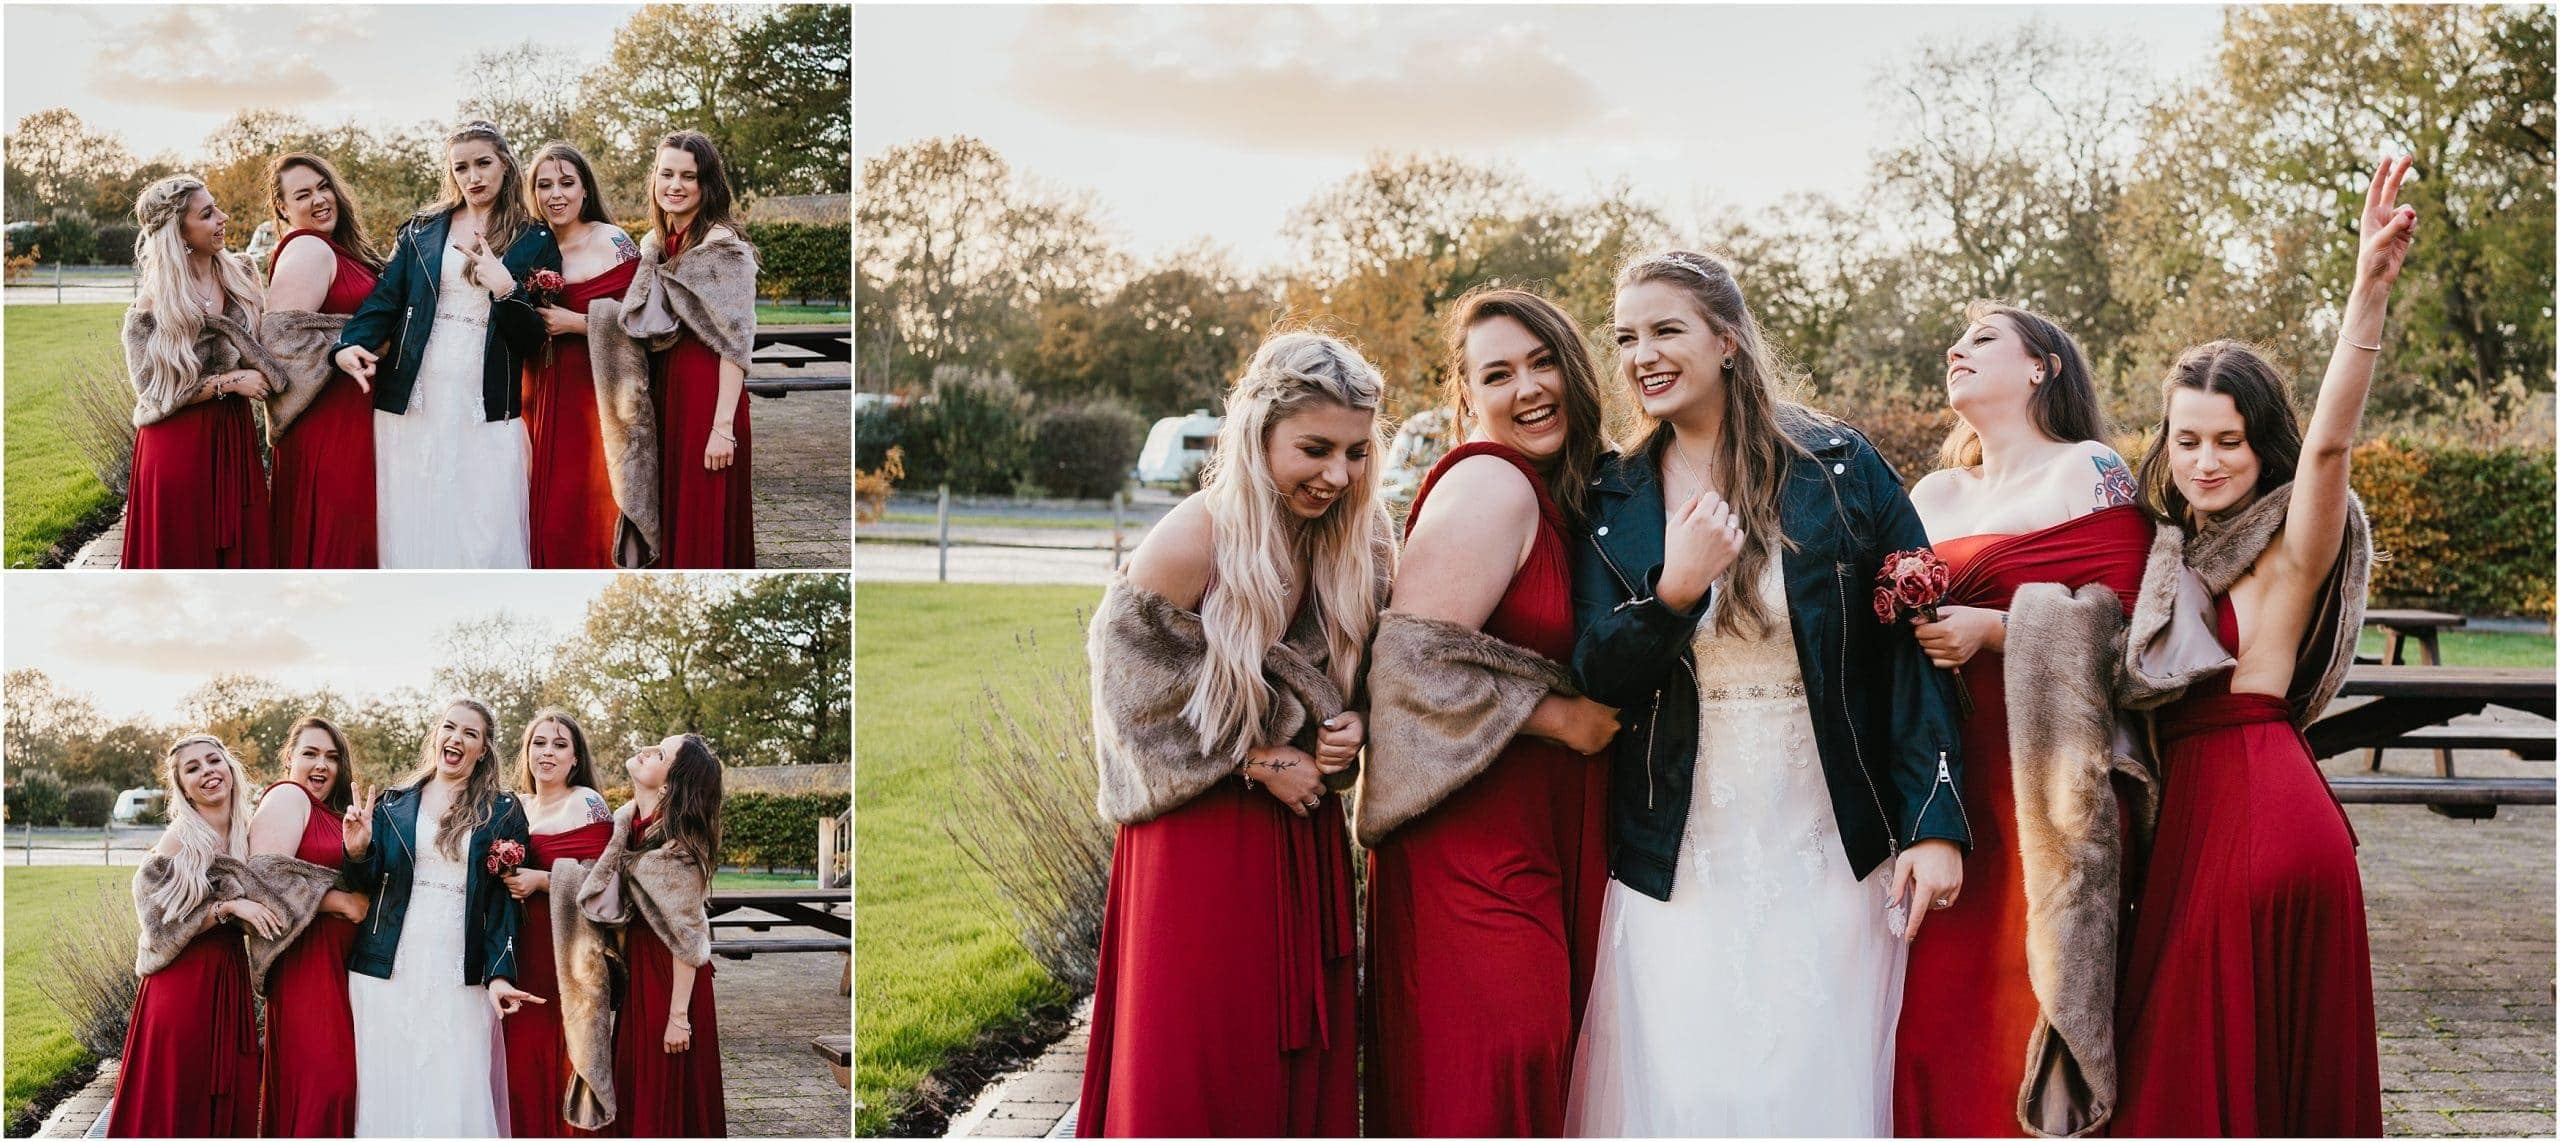 Bridesmaids at Micro Wedding